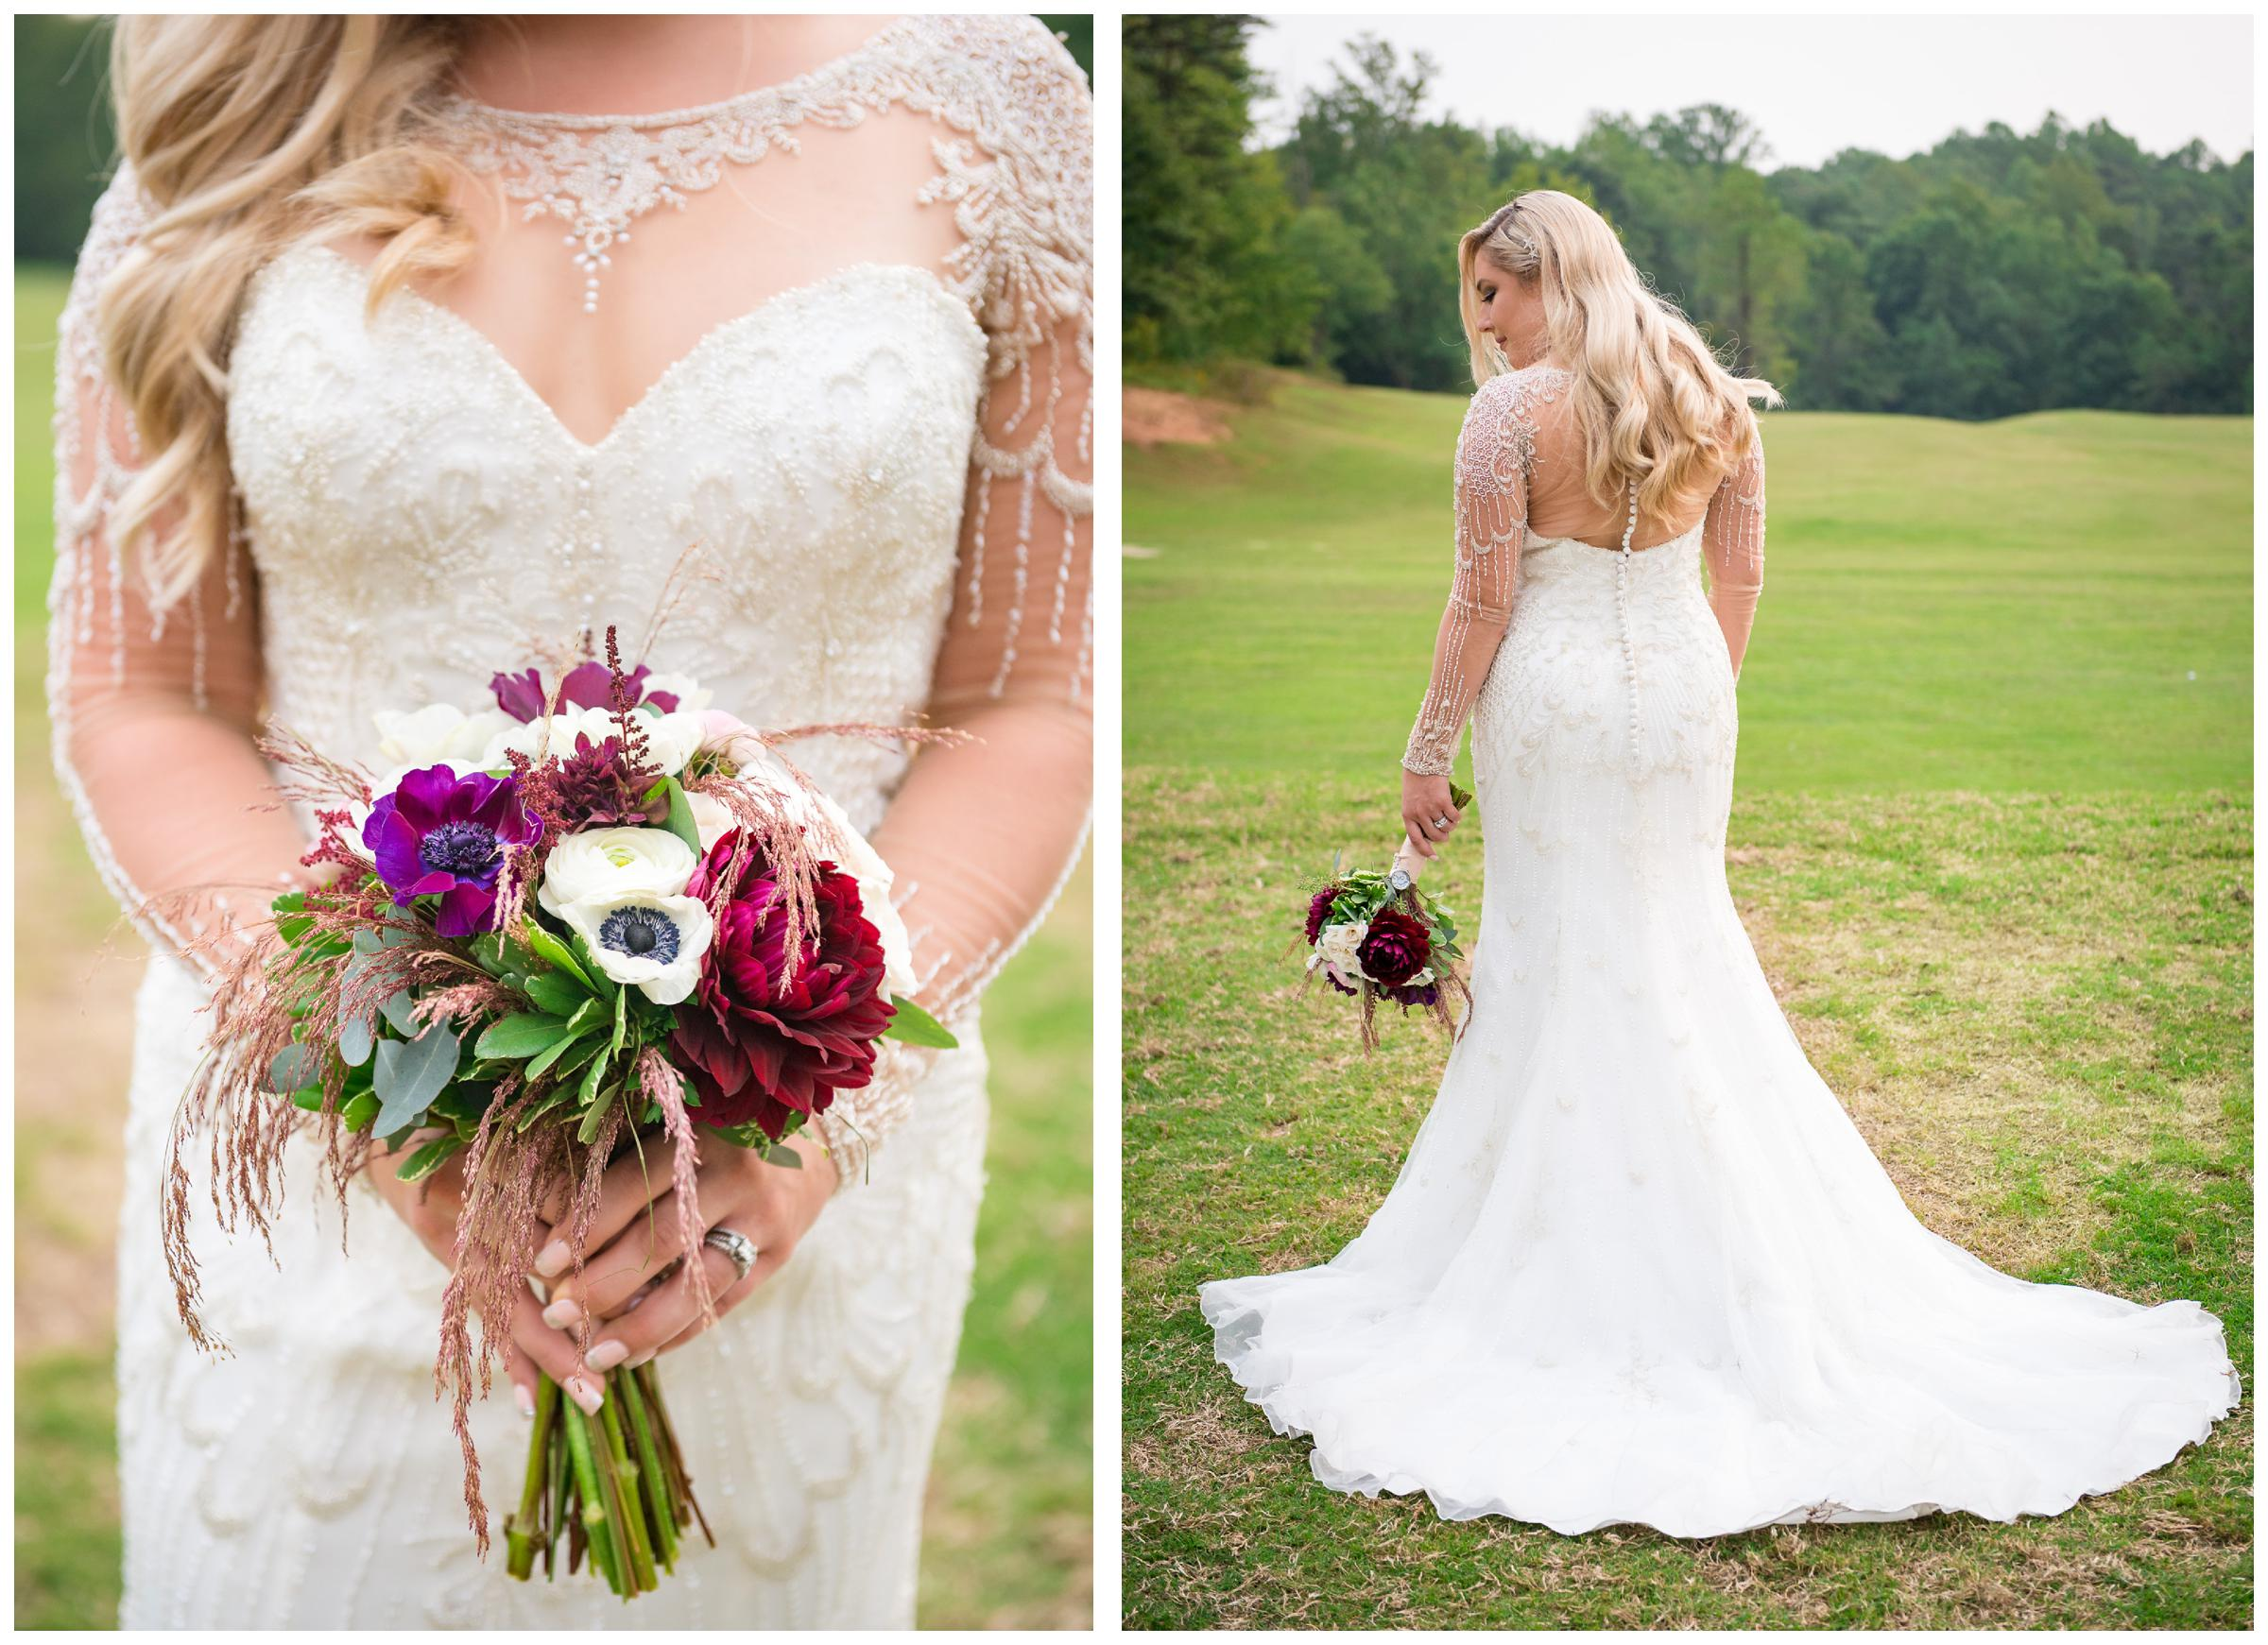 beaded wedding gown with sheer sleeves and bouquet